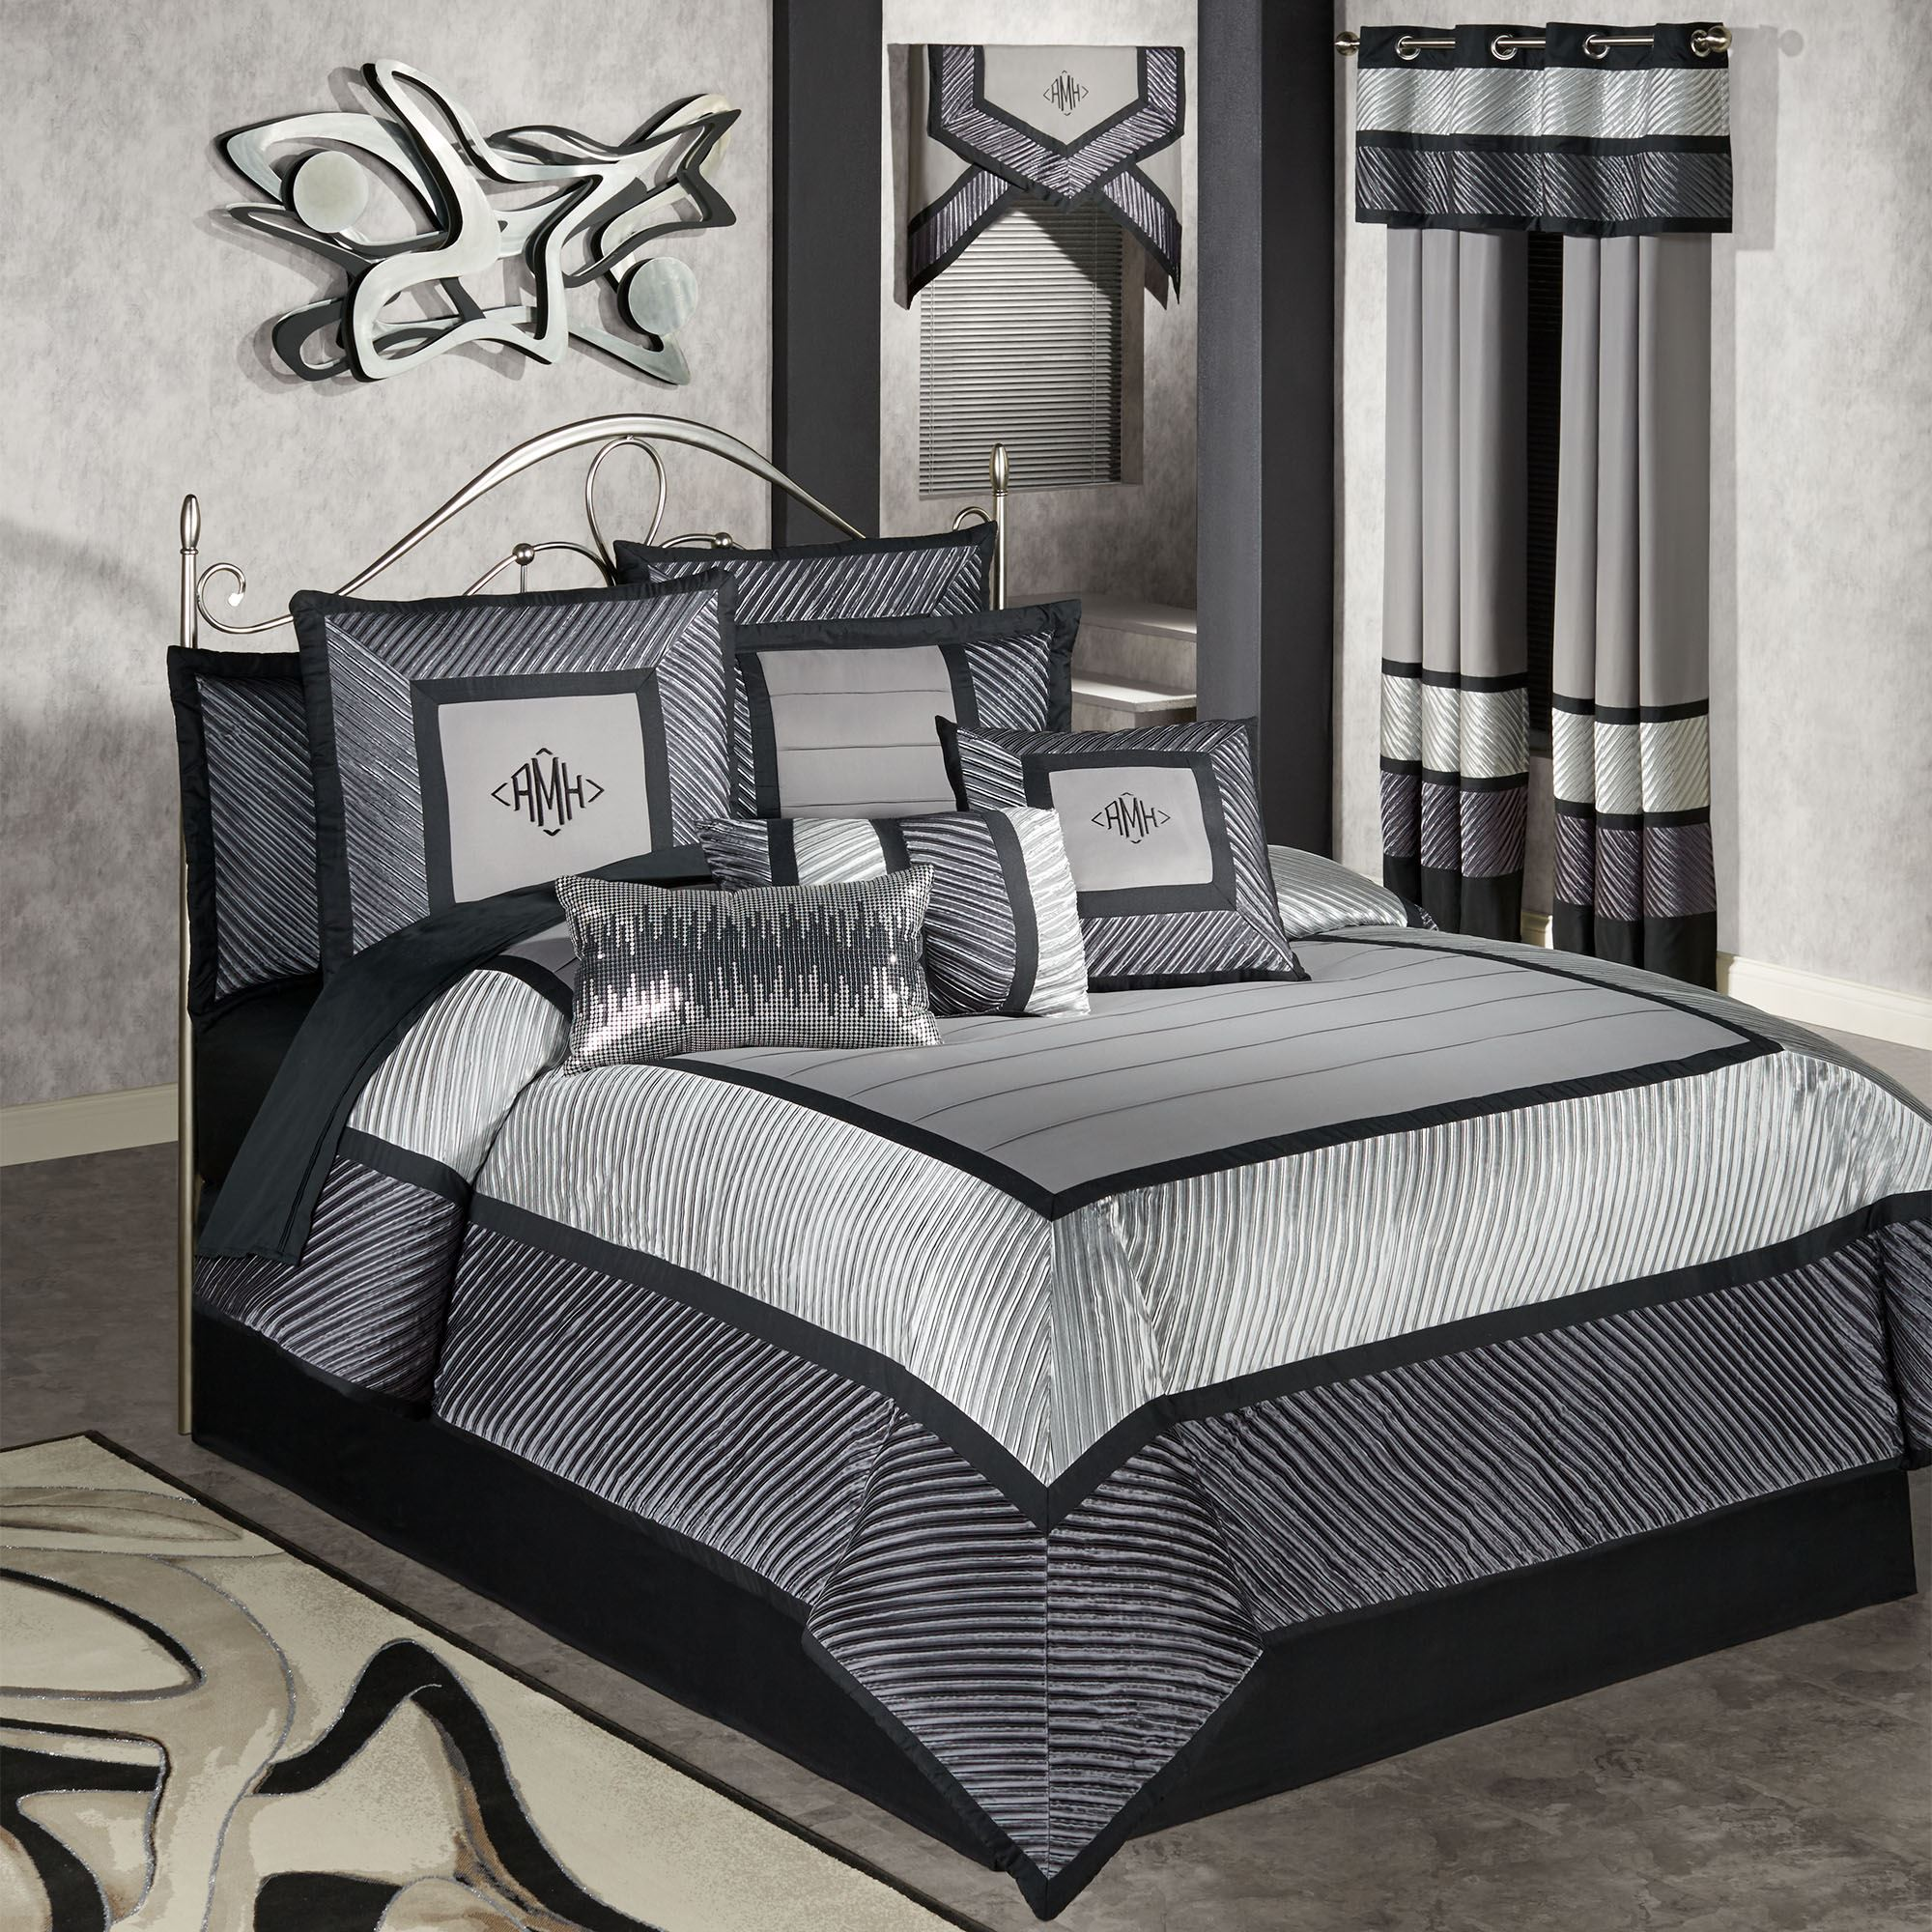 Omega modern comforter bedding - Bedroom sheets and comforter sets ...